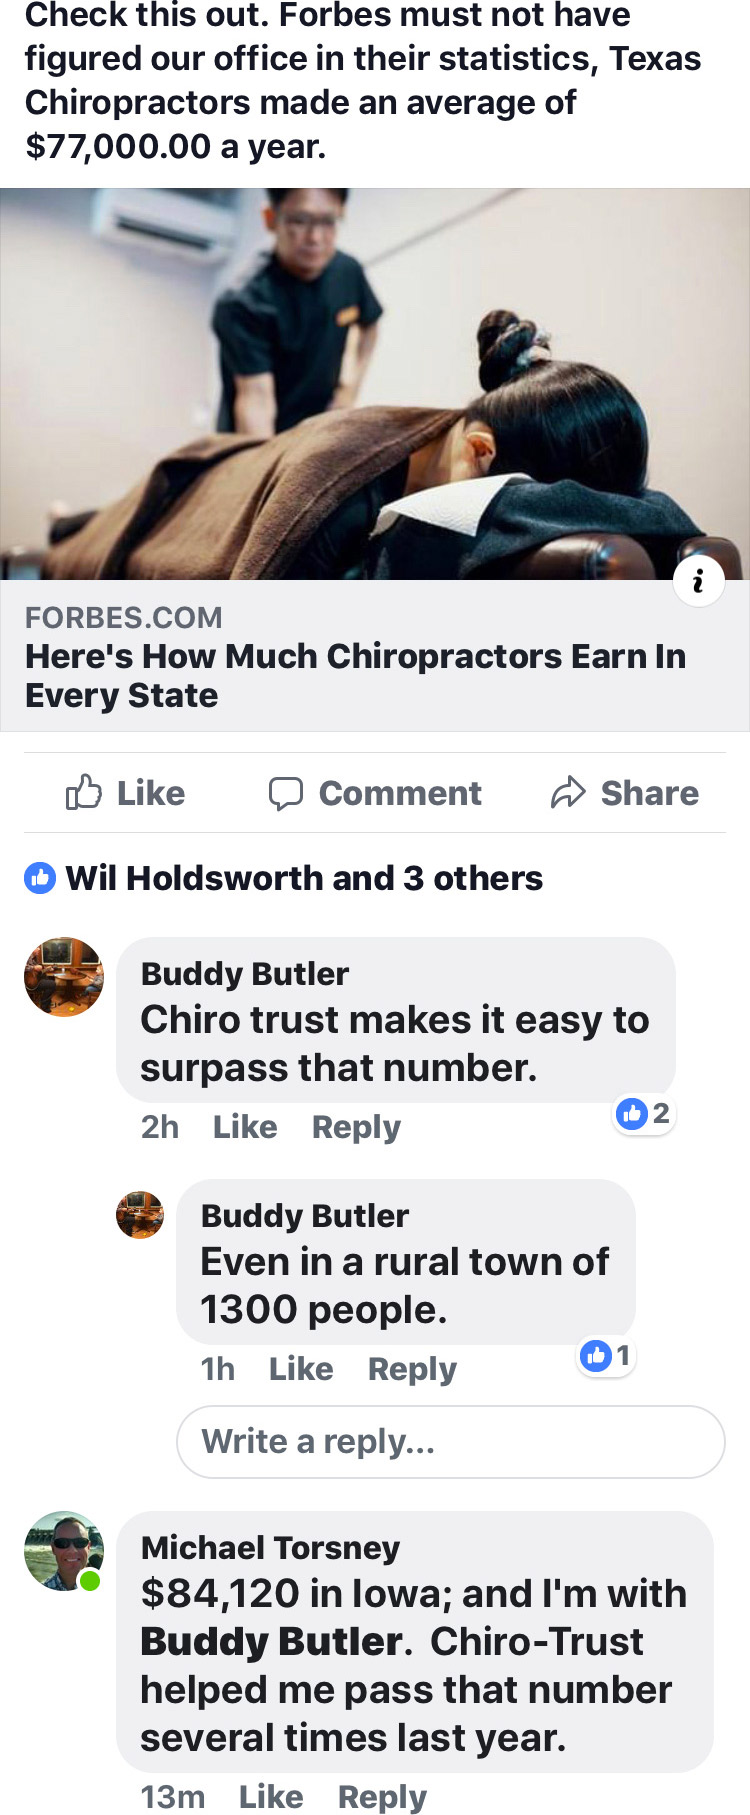 Check this out. Forbes must not have figured our office in their statistics, Texas Chiropractors made an average of $77,000.00 a year. Forbes: 'Here's How Much Chiropractors Earn In Every State'. Buddy Butler: Chiro trust makes it easy to surpass that number. Even in a rural town of 1300 people. Michael Torsney: $84,120 in Iowa; and I'm with Buddy Butler. Chiro-Trust helped me pass that number several times last year.